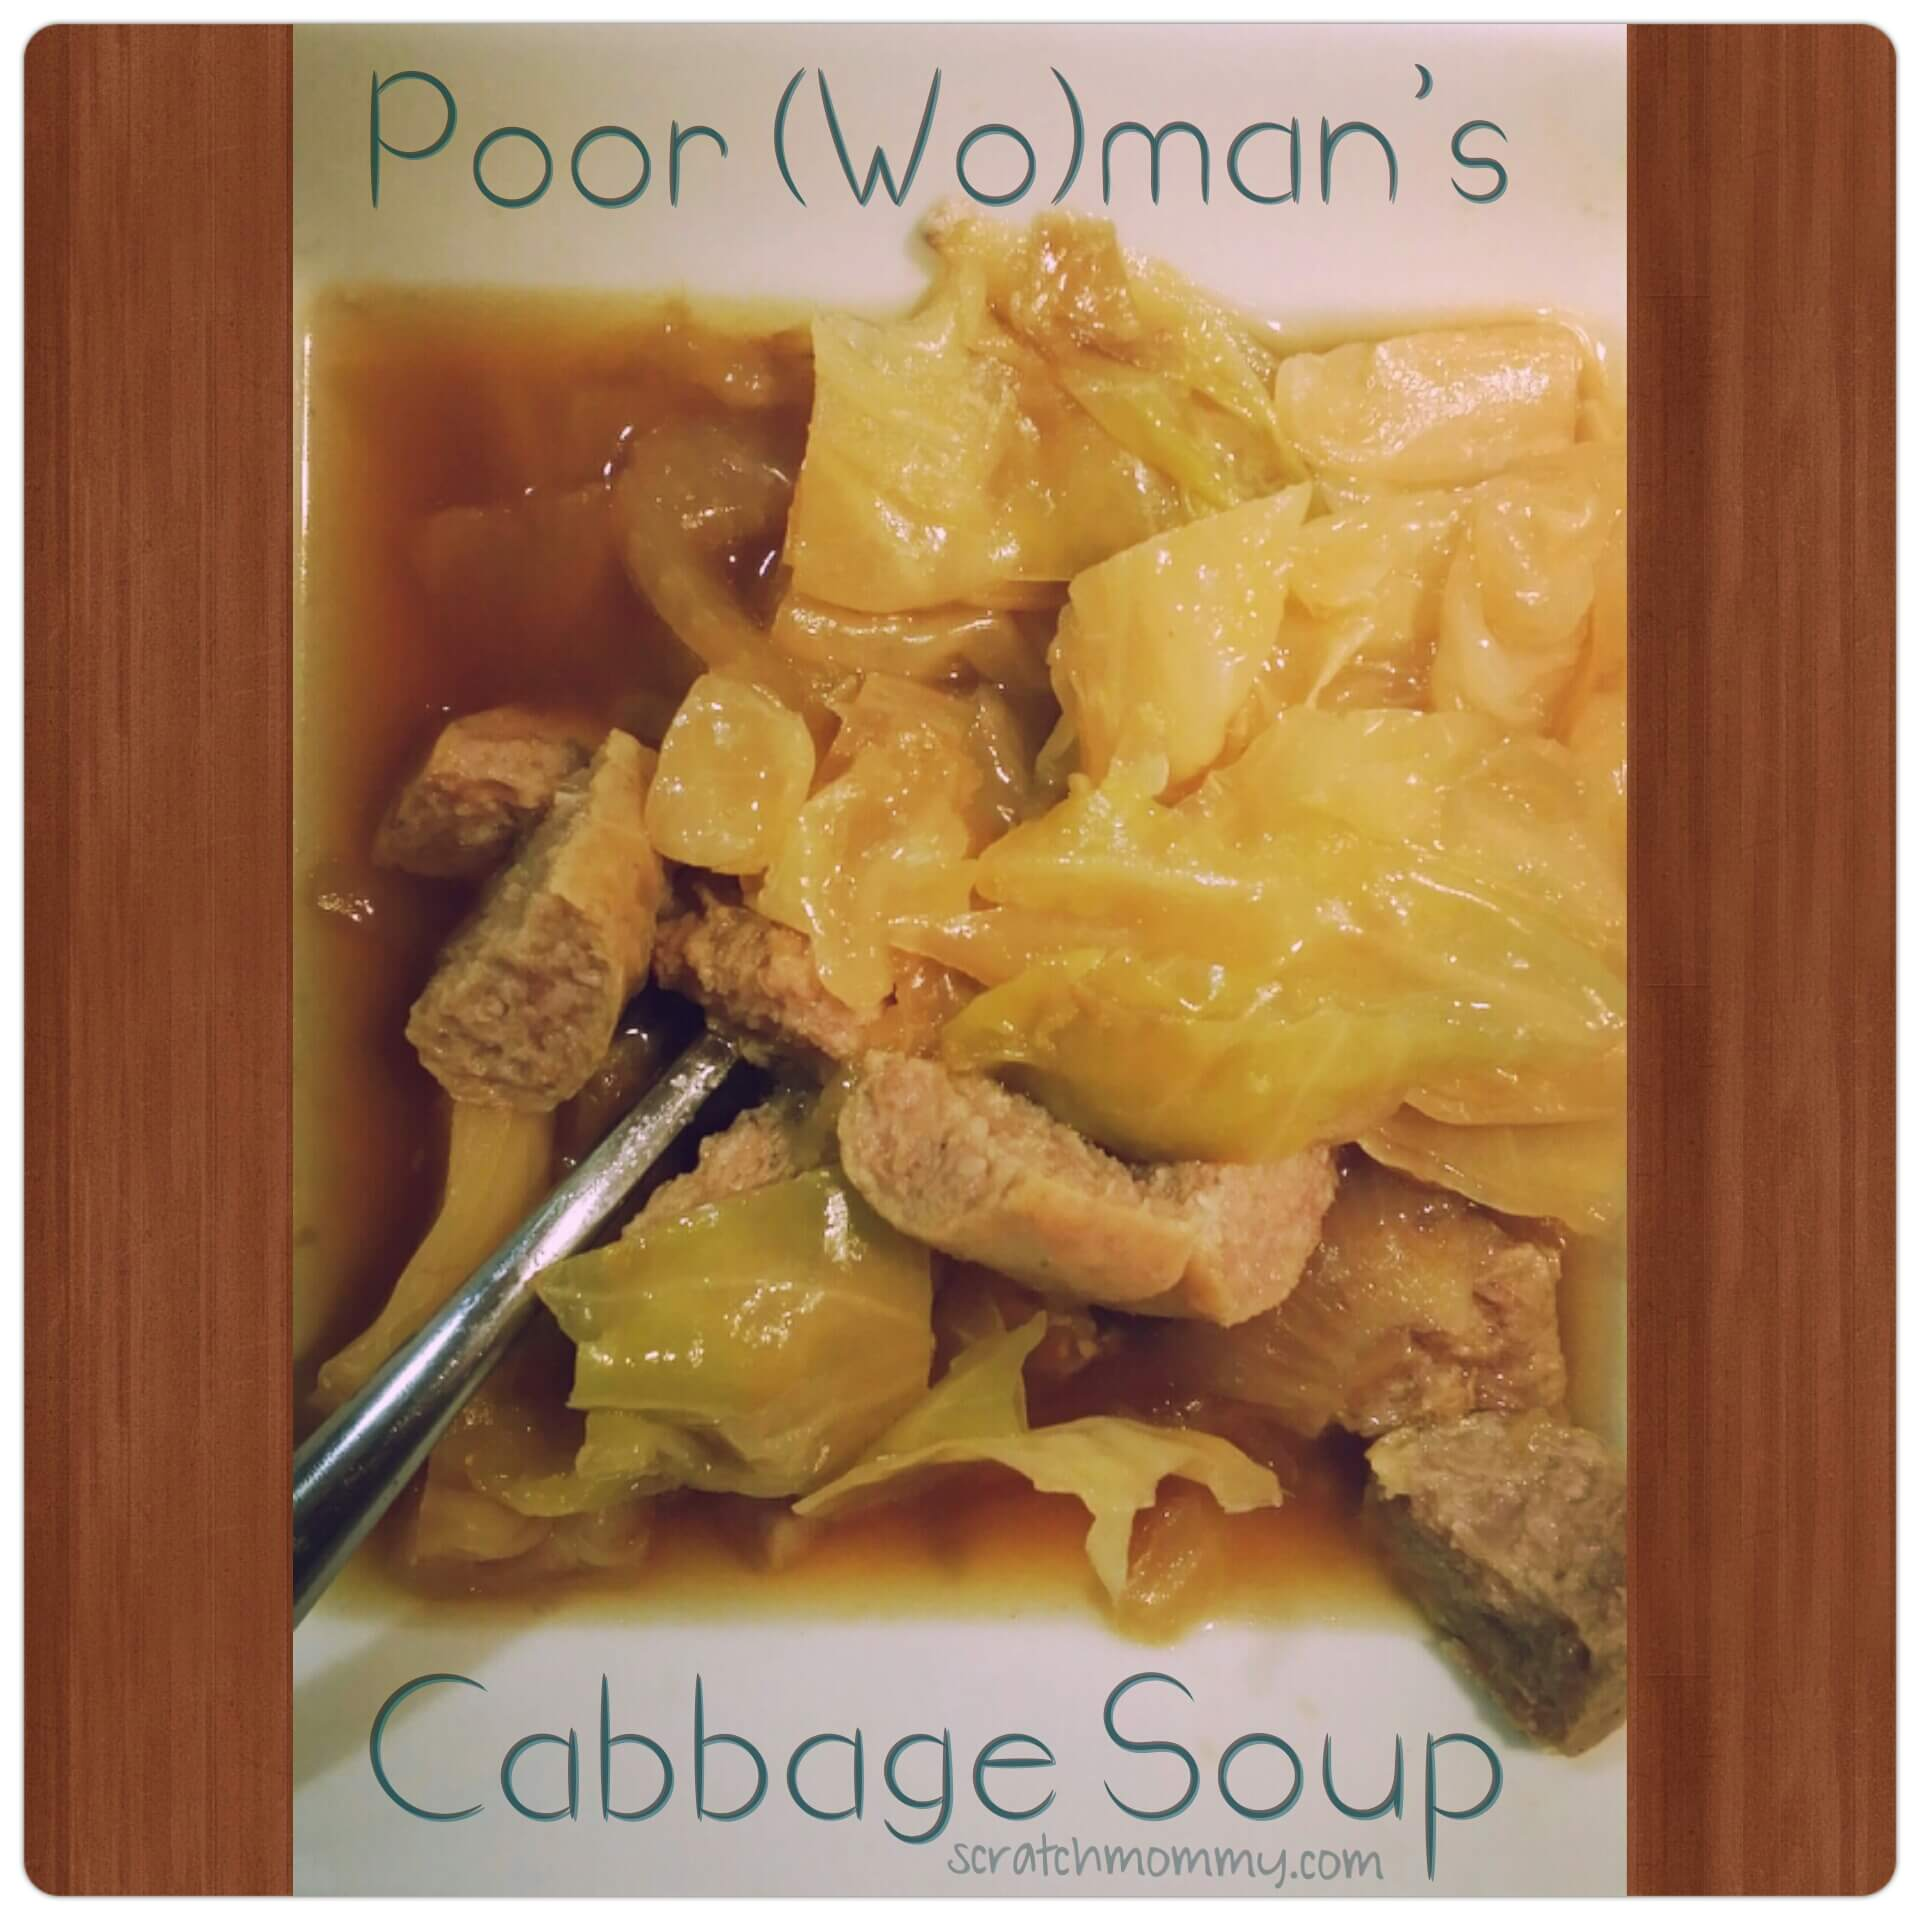 Poor (Wo)man's Cabbage Soup - Easy, Nourishing,